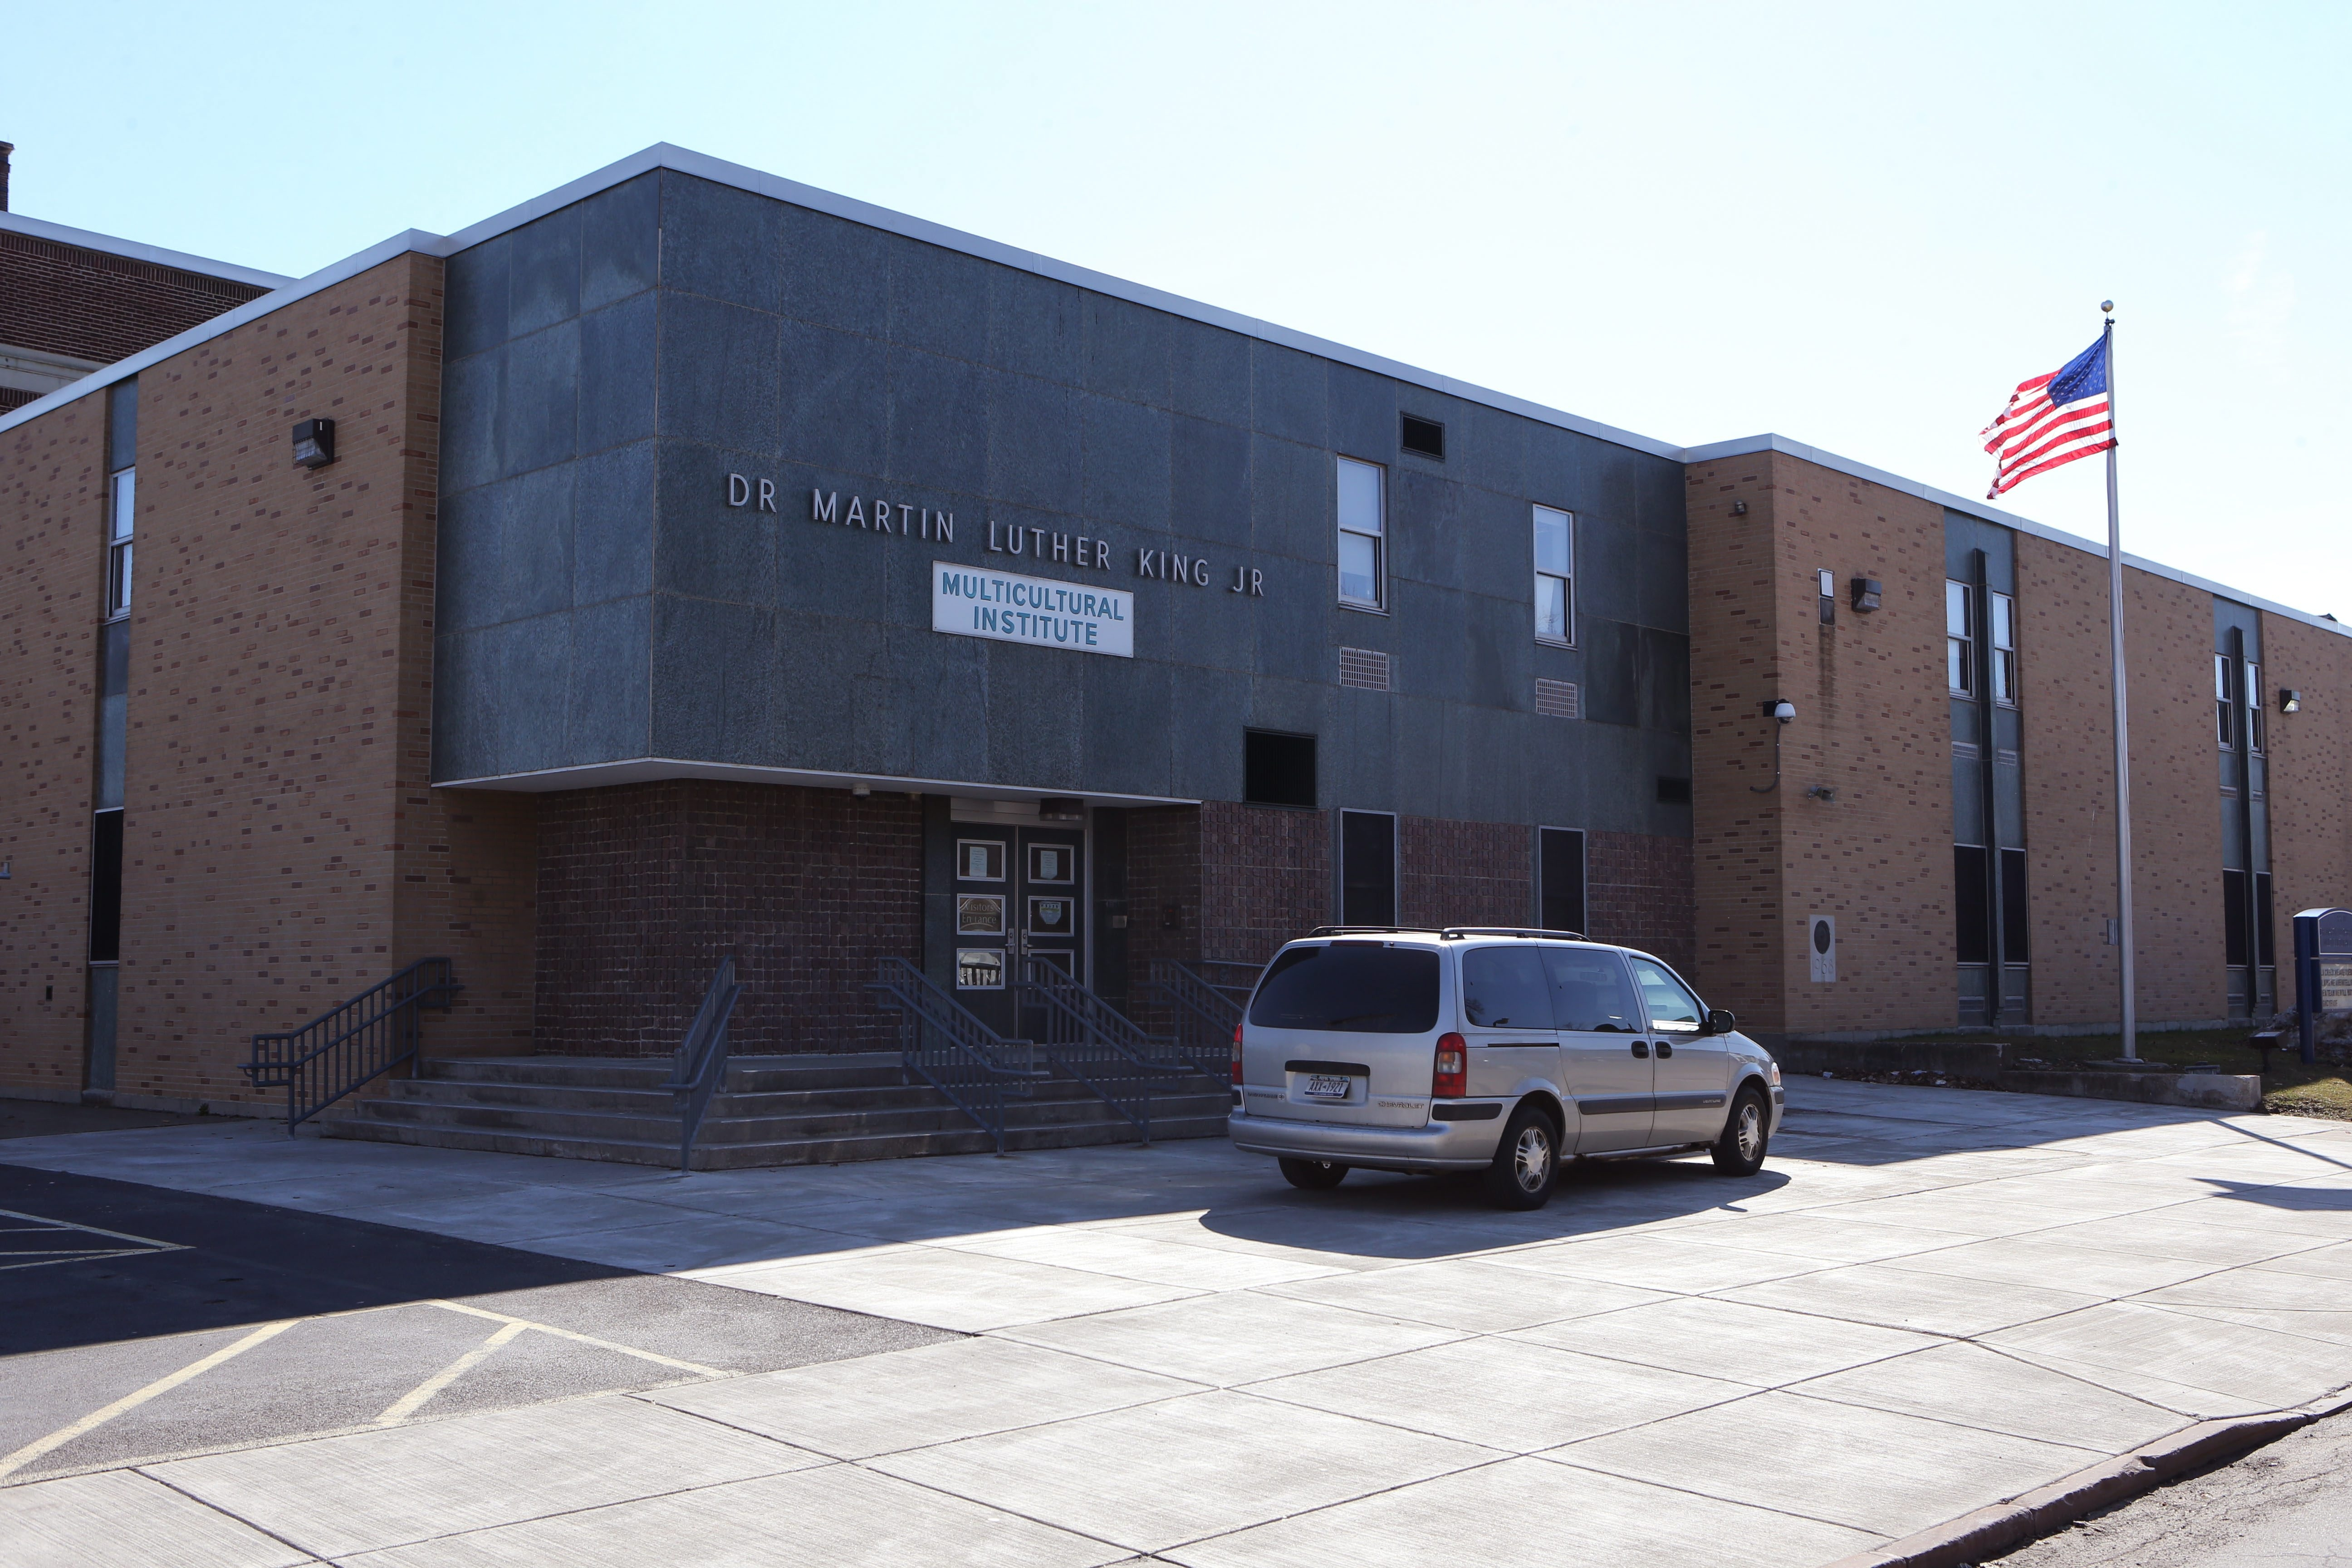 The school district's failure to produce an acceptable plan for Martin Luther King Jr. Multicultural Institute is nothing short of a disgrace. (Buffalo News file photo)